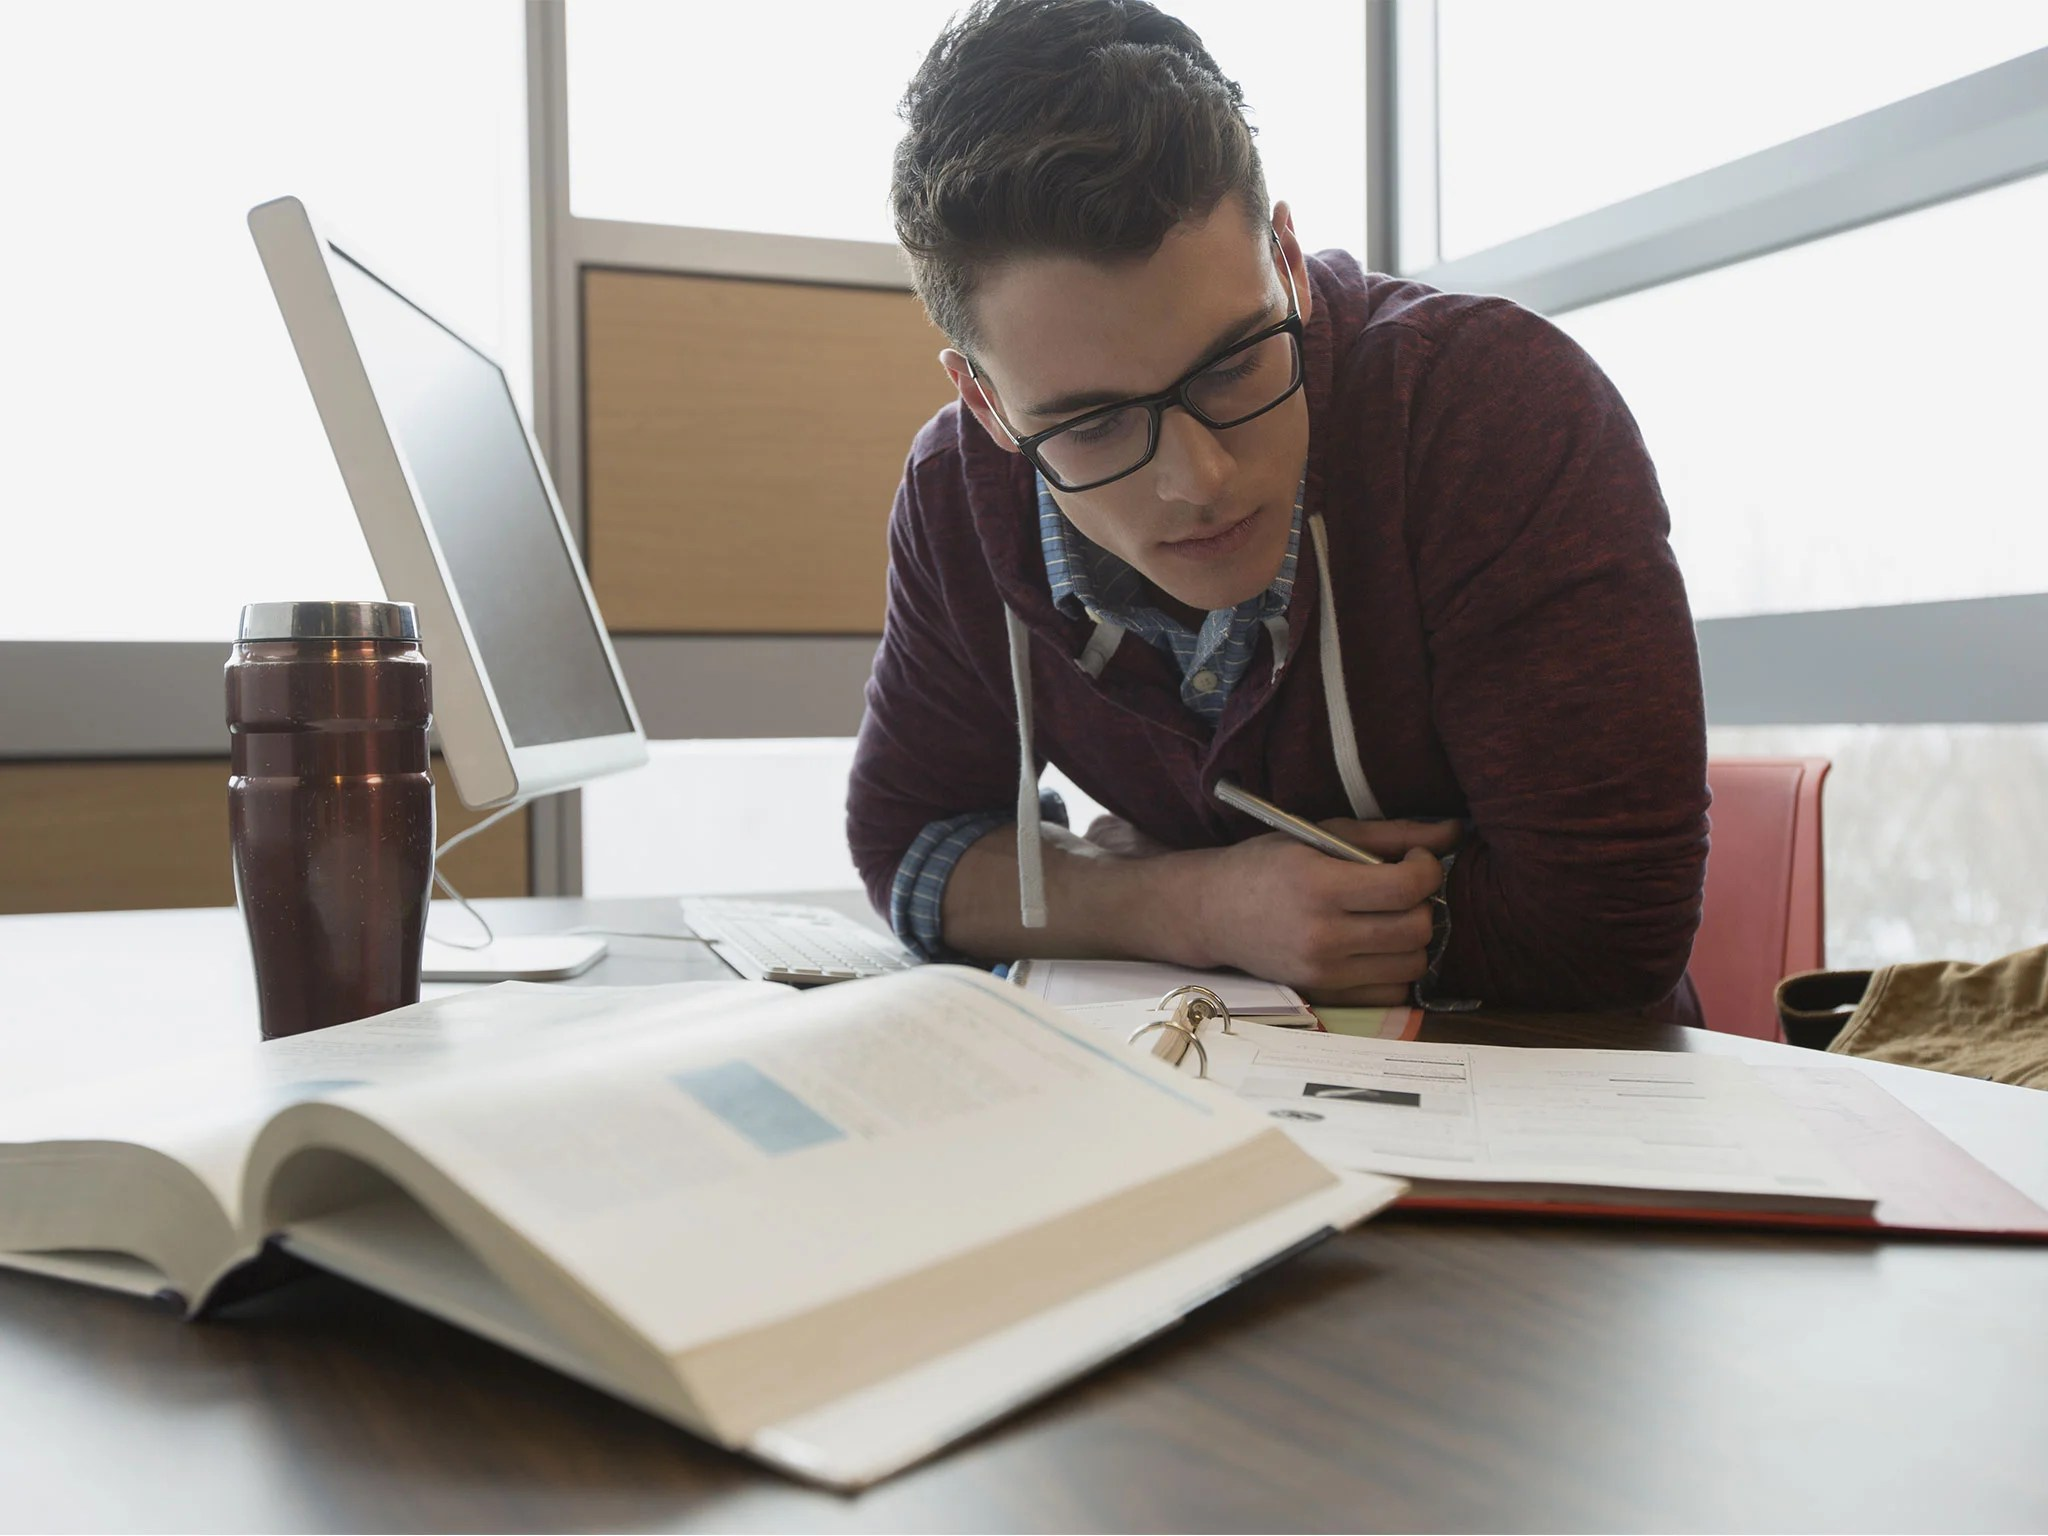 University Students Are Struggling To Read Entire Books